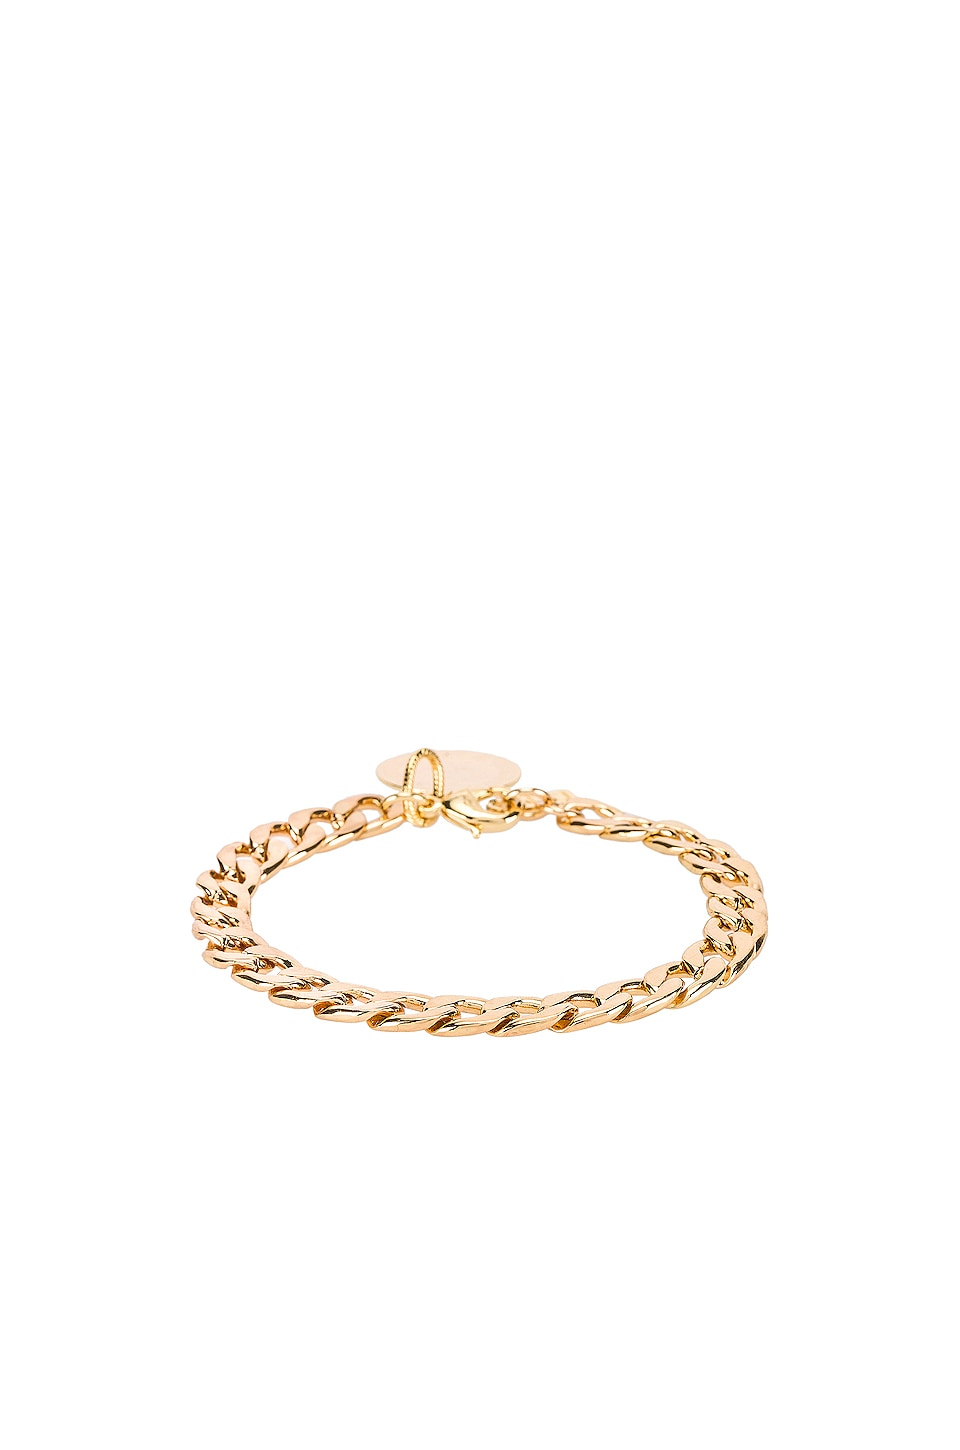 Natalie B Jewelry D'Or Chain Bracelet in Gold